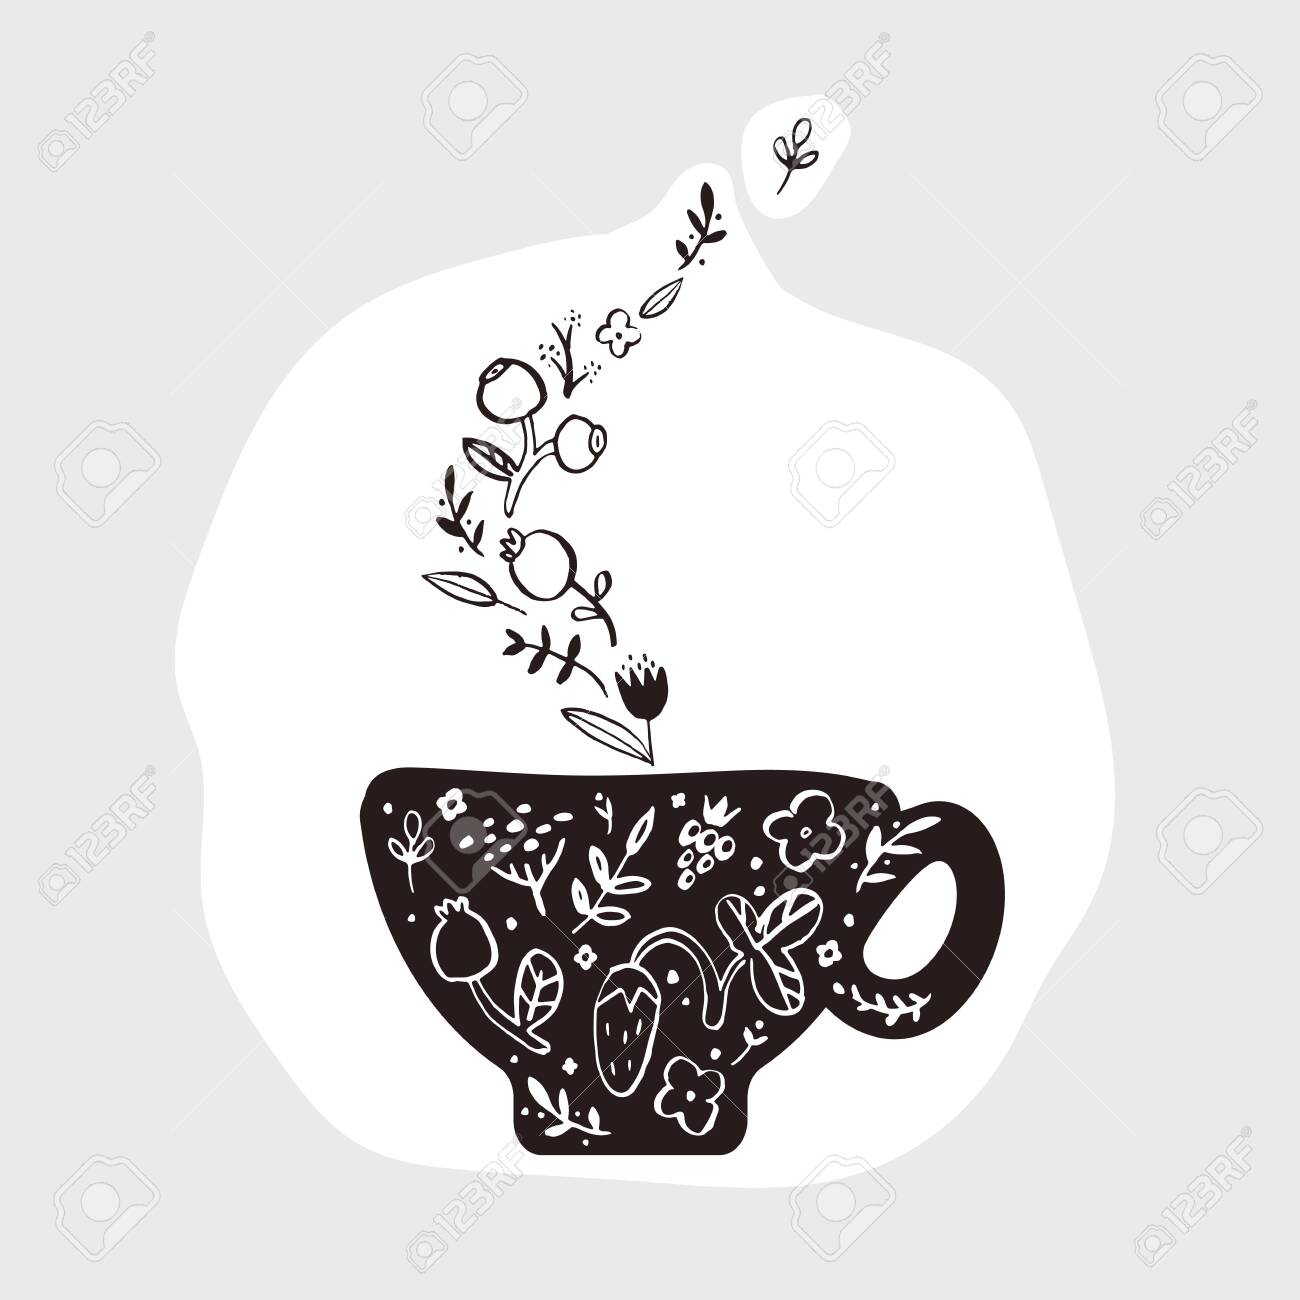 A doodle picture of a cup of herbal fragrant tea. - 142695204